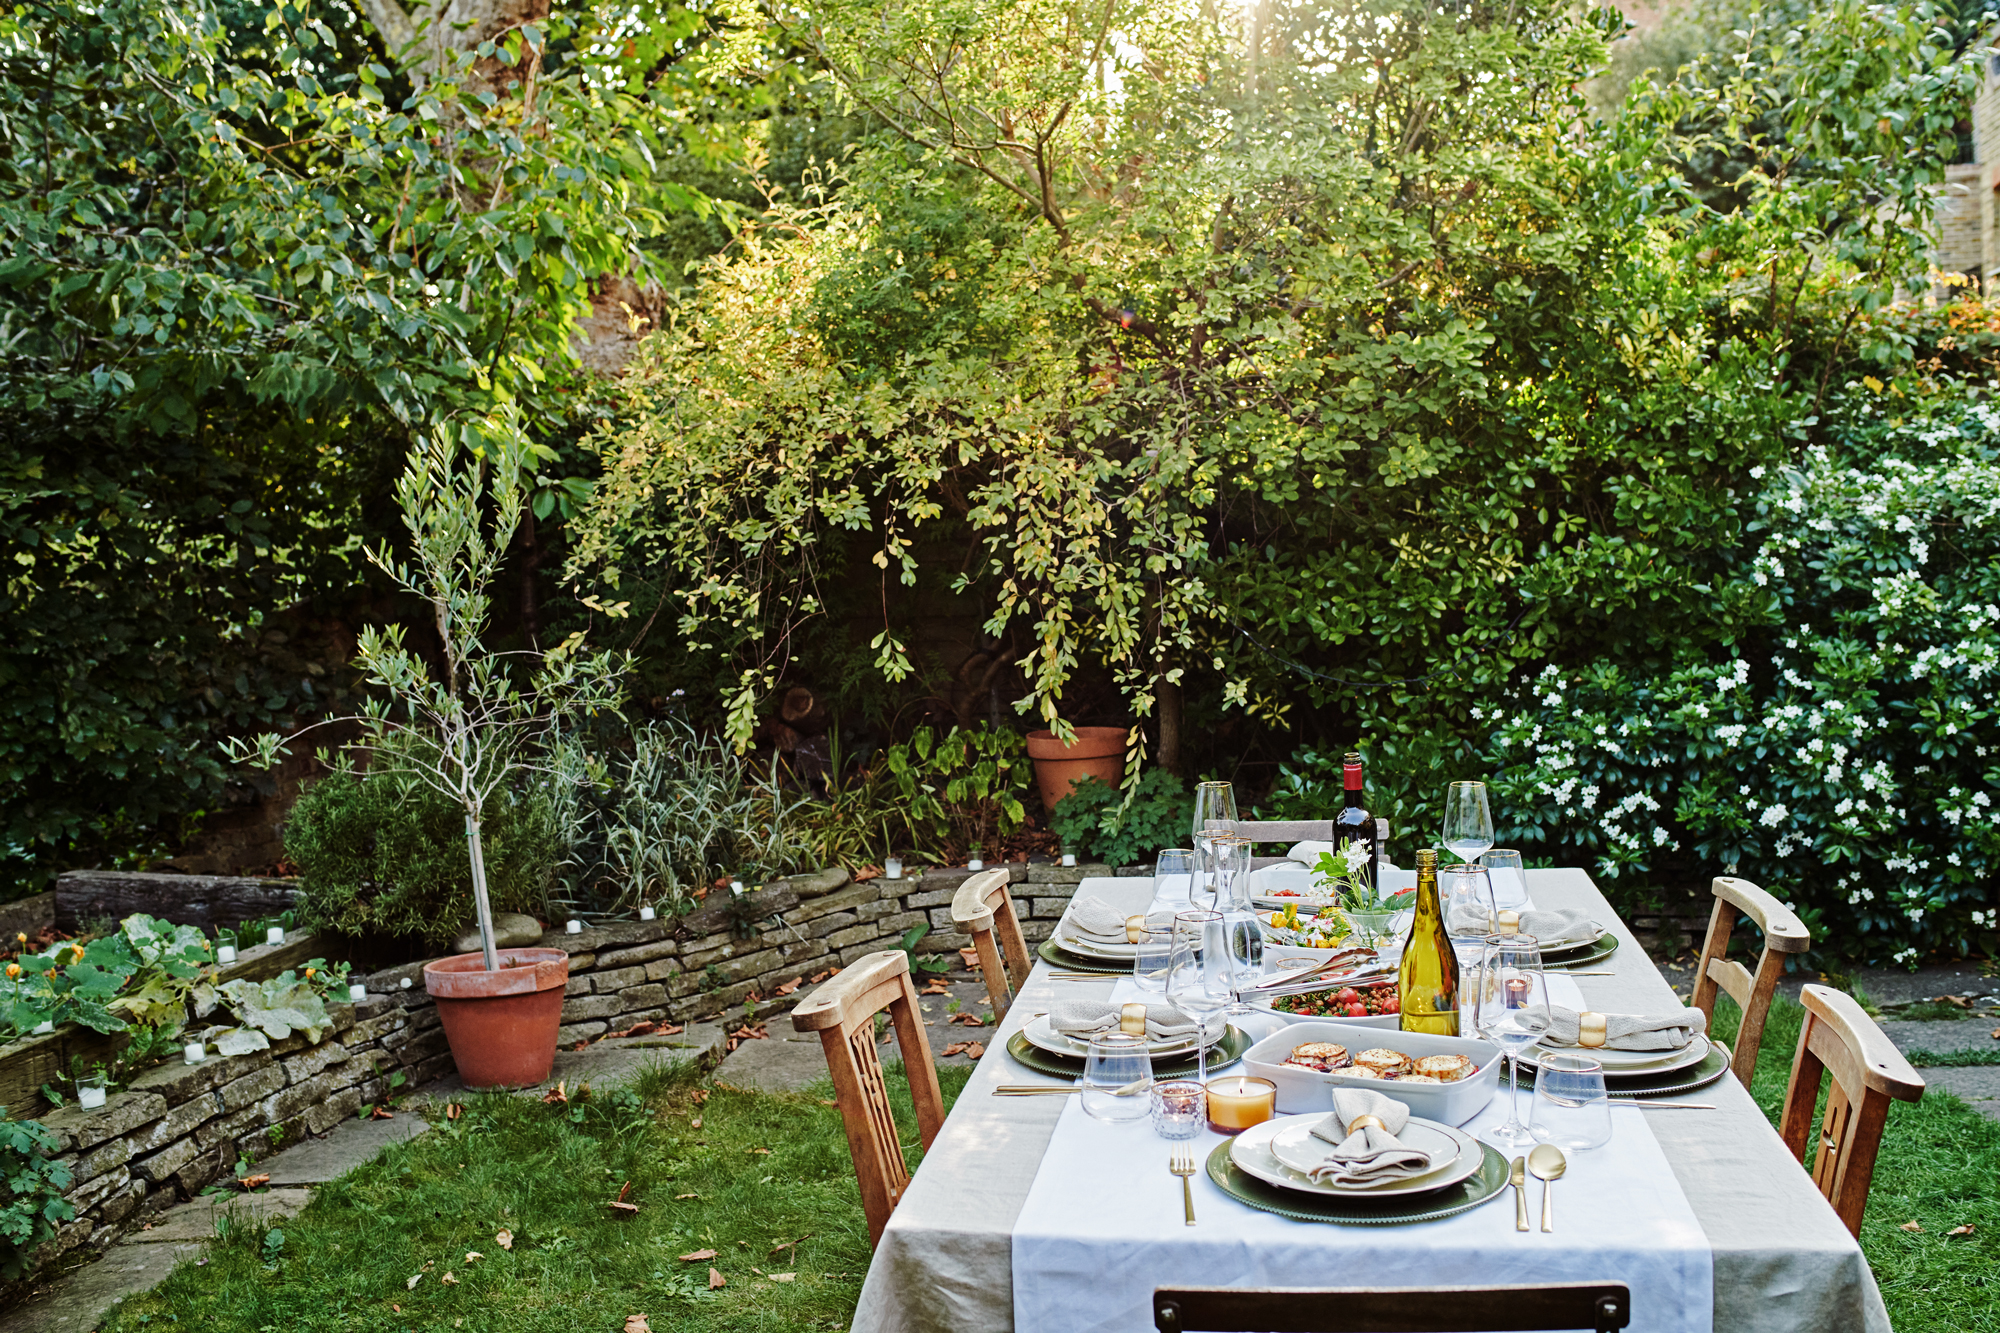 Table set with food ready to serve outside